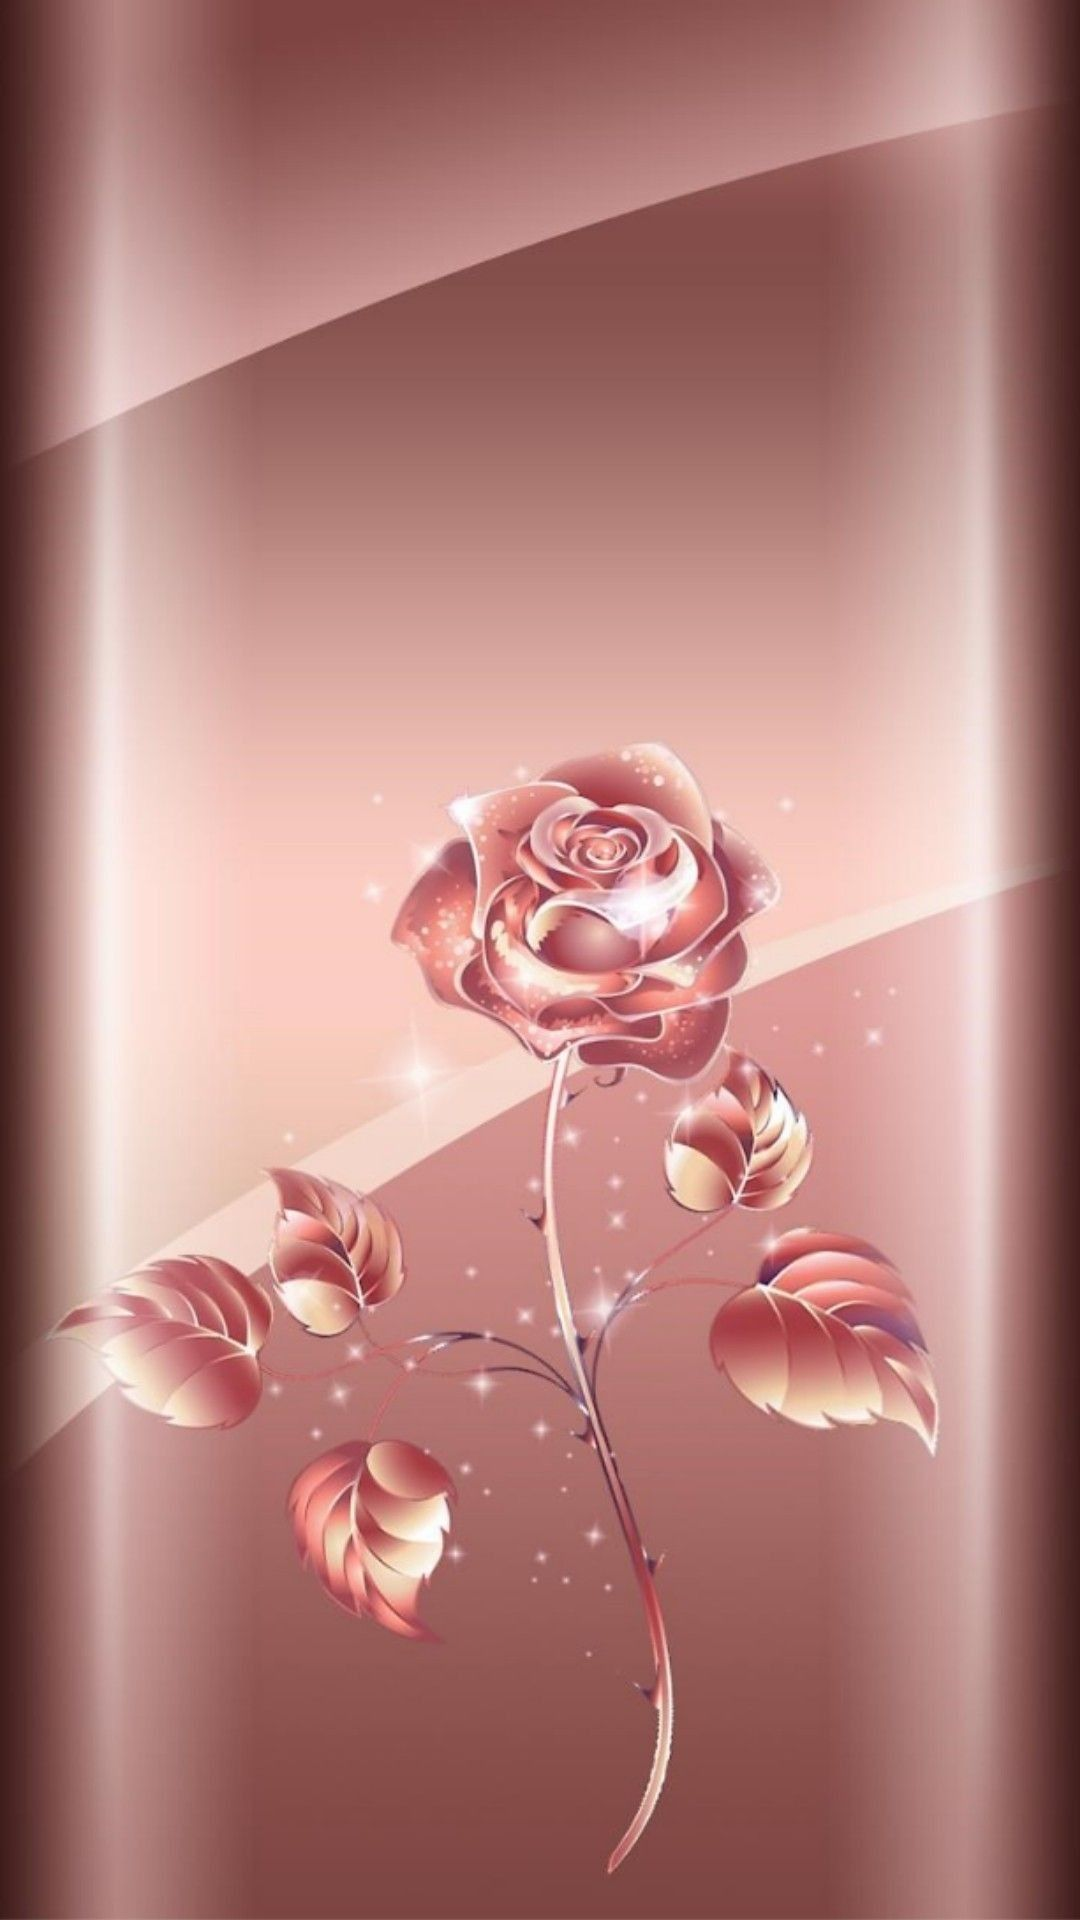 Gold Wallpaper Background Rose Gold Rose Gold Wallpaper Beautiful Iphone Rose Gold 1080x1920 Download Hd Wallpaper Wallpapertip